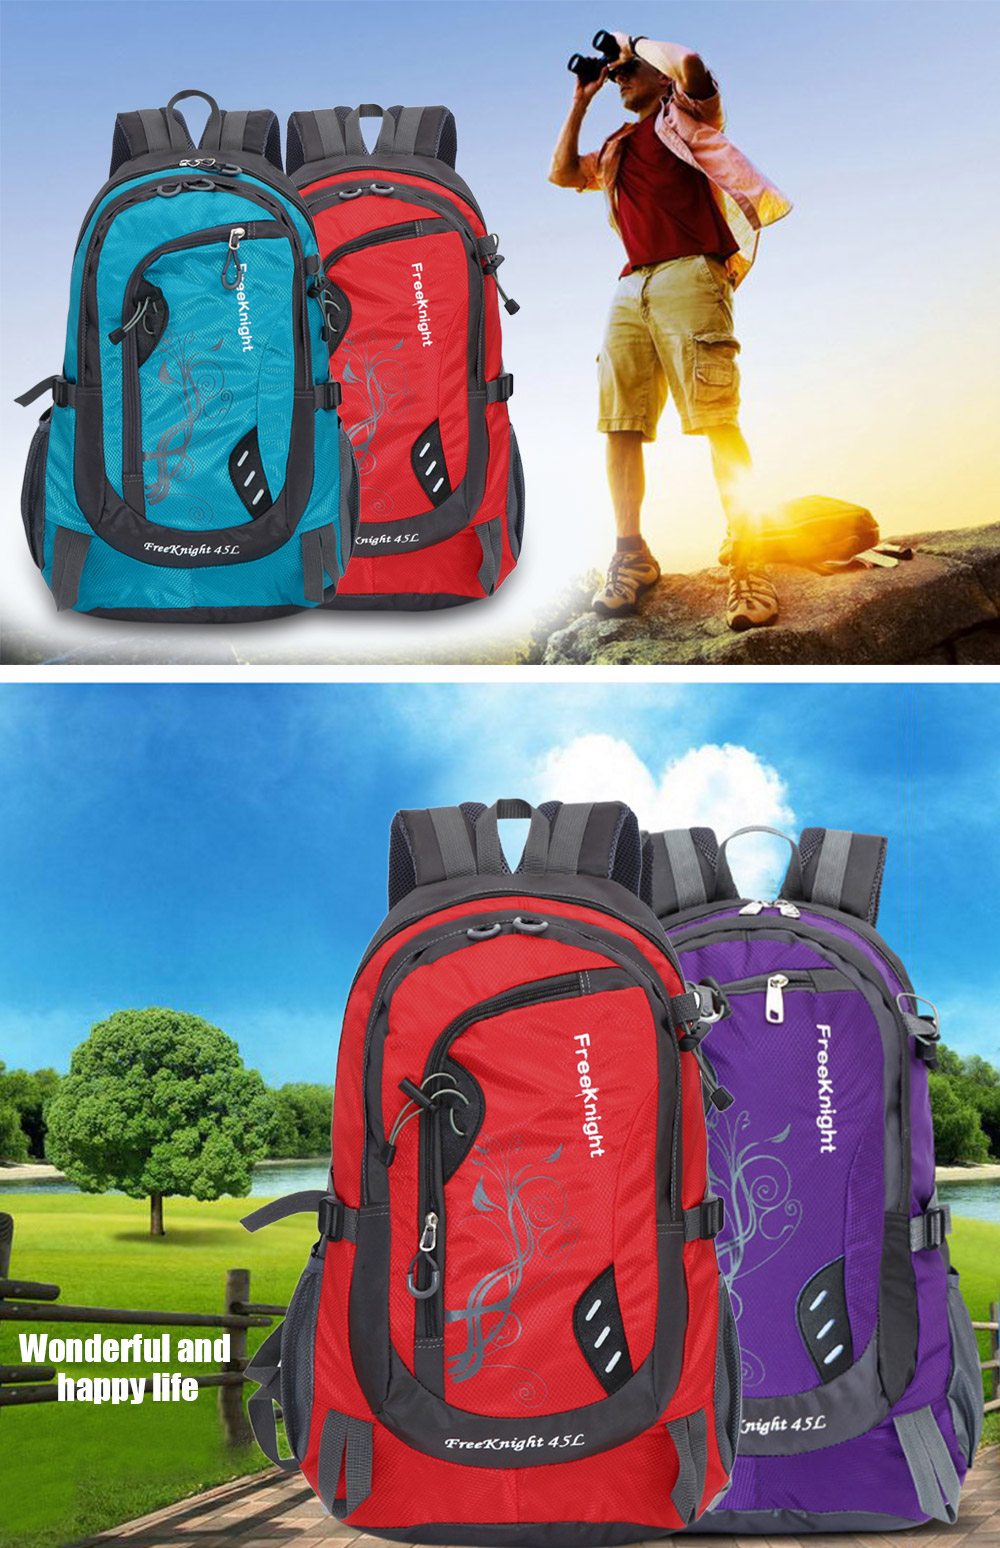 FREEKNIGHT FK0216 45L Water Resistant Portable Backpack for Outdoor Climbing Cycling Hiking